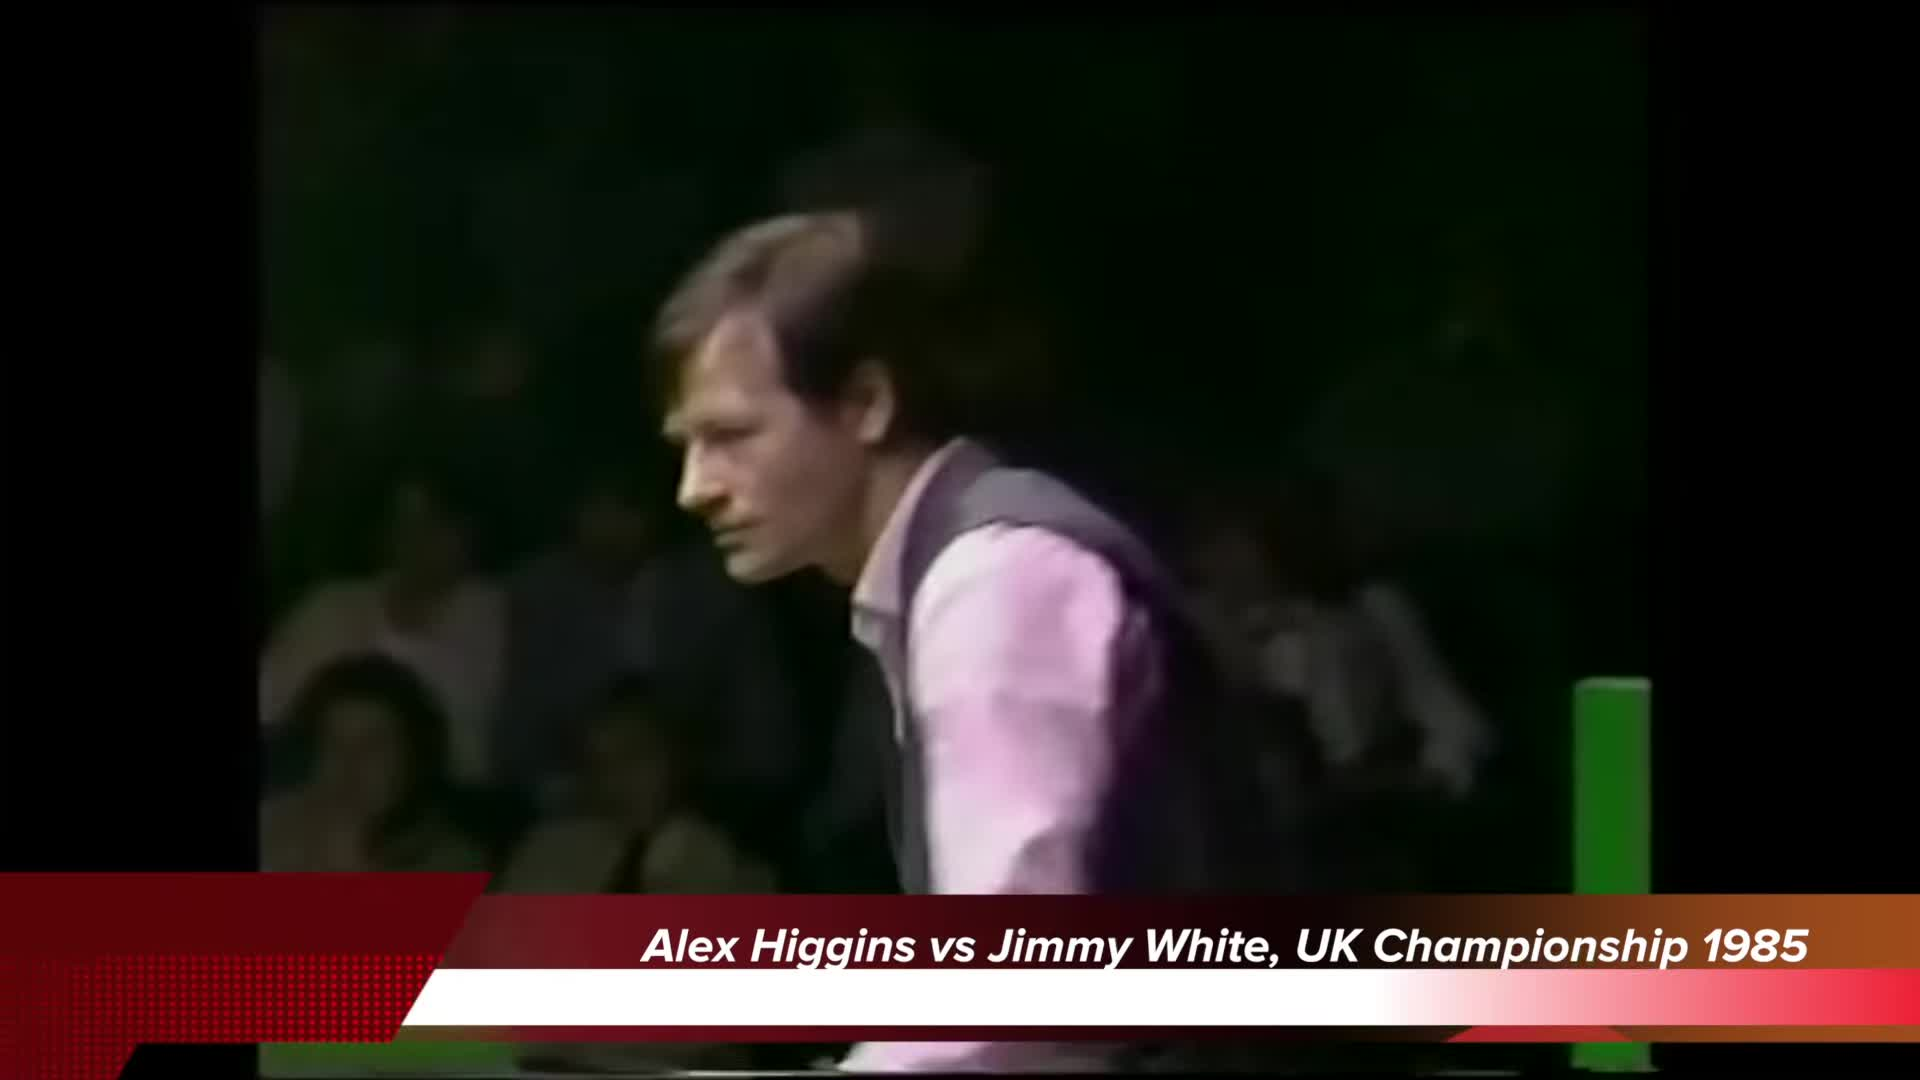 amazing billiard shots, best snooker safety shot, best snooker shot, best snooker trick shot, best snooker trick shot ever, impossible pool shots, snooker skill shots, snooker trick shot world championship, snooker trick shots tutorial, unbelievable snooker shots, Top 10 Amazing Snooker Trick shots of All Time GIFs